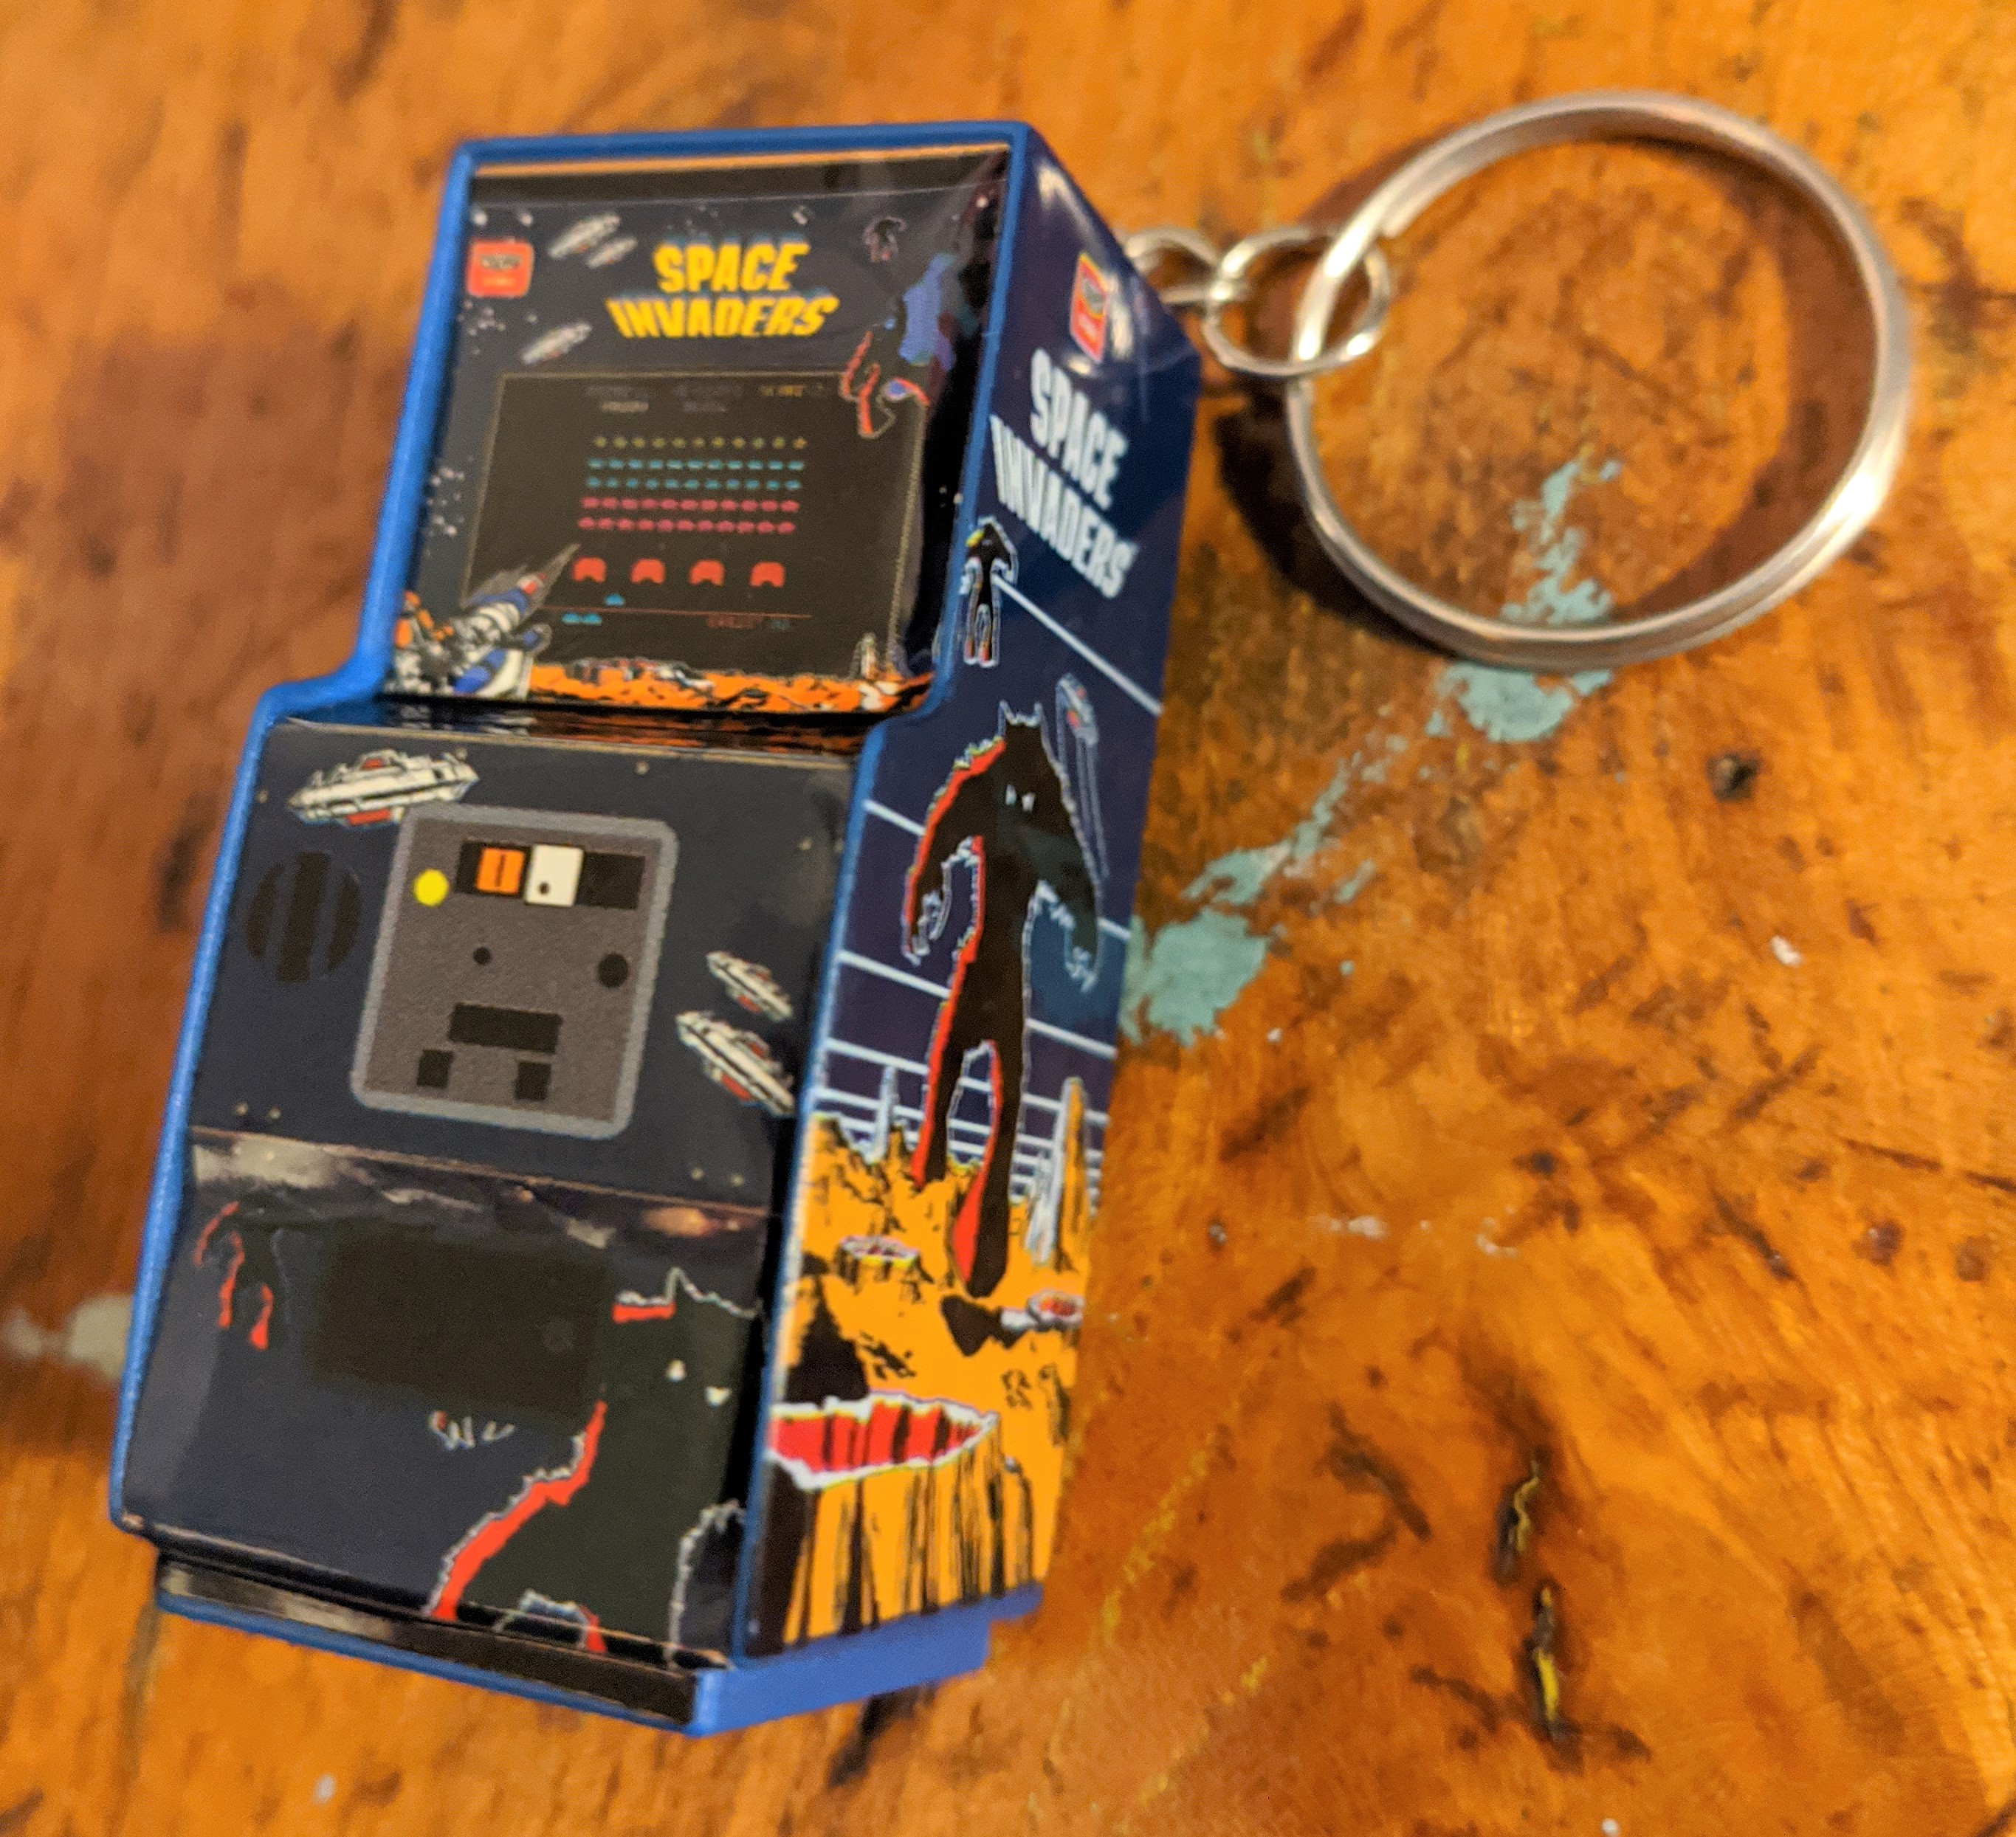 Space Invaders Key Chain